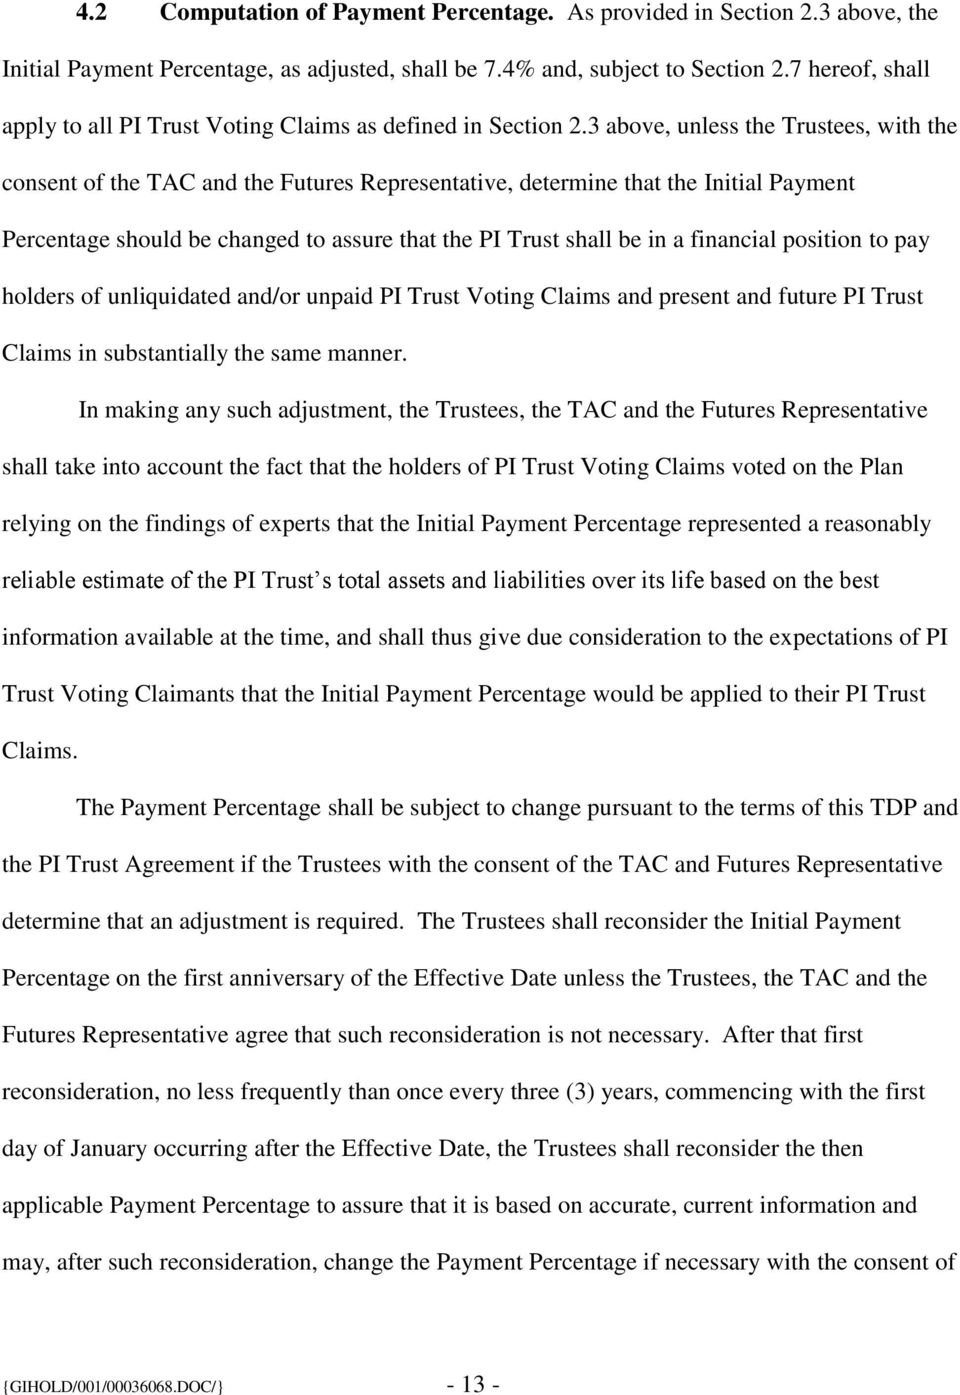 3 above, unless the Trustees, with the consent of the TAC and the Futures Representative, determine that the Initial Payment Percentage should be changed to assure that the PI Trust shall be in a